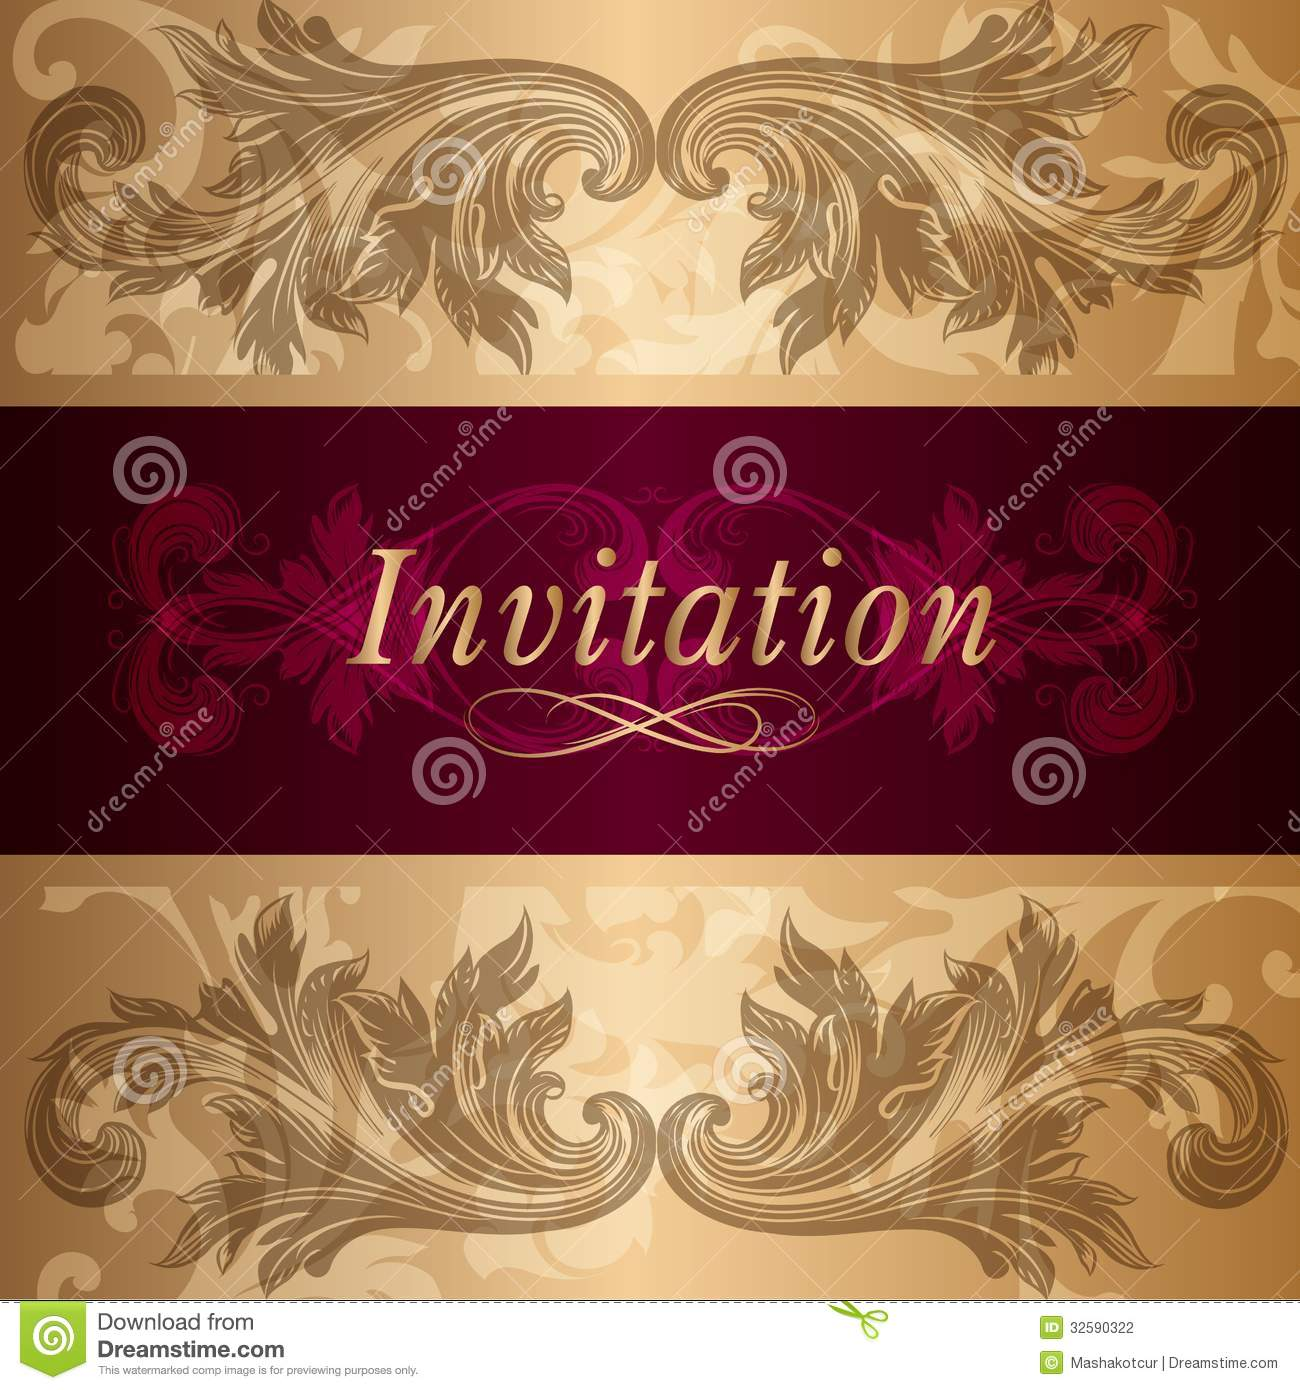 Design Of Luxury Invitation Card In Vintage Style Stock Vector ...